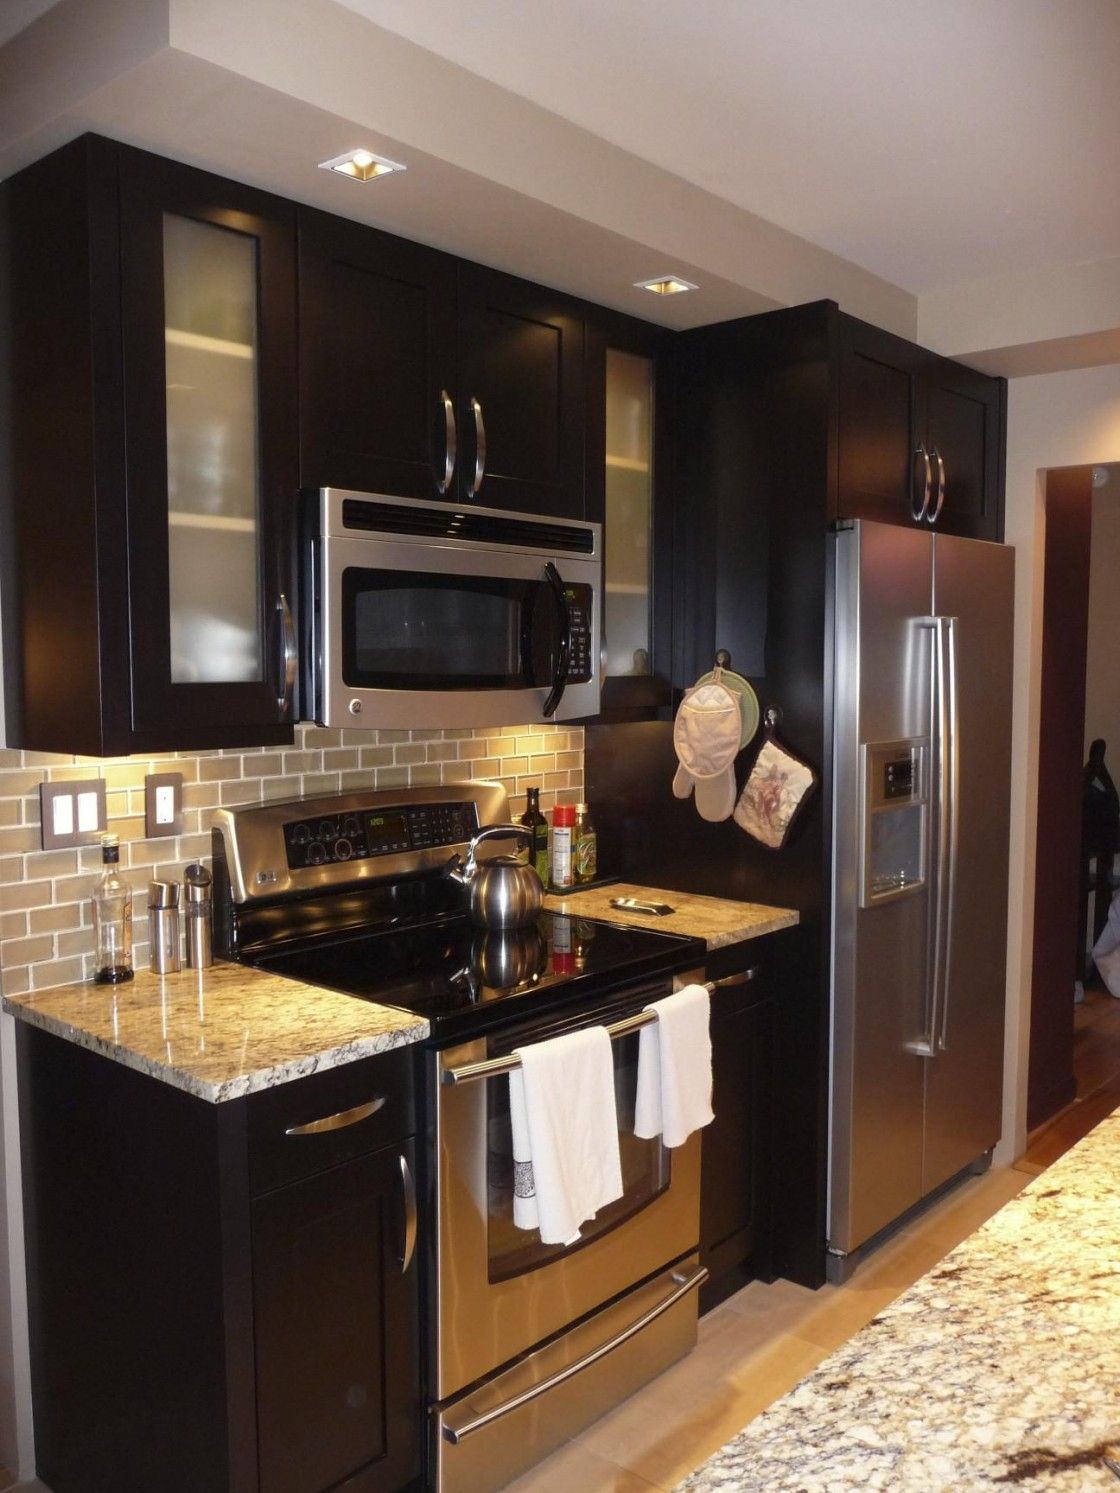 Designer Kitchens Dark Cabinets L Modern Small Kitchen Design With Black Painted Cherry Wood